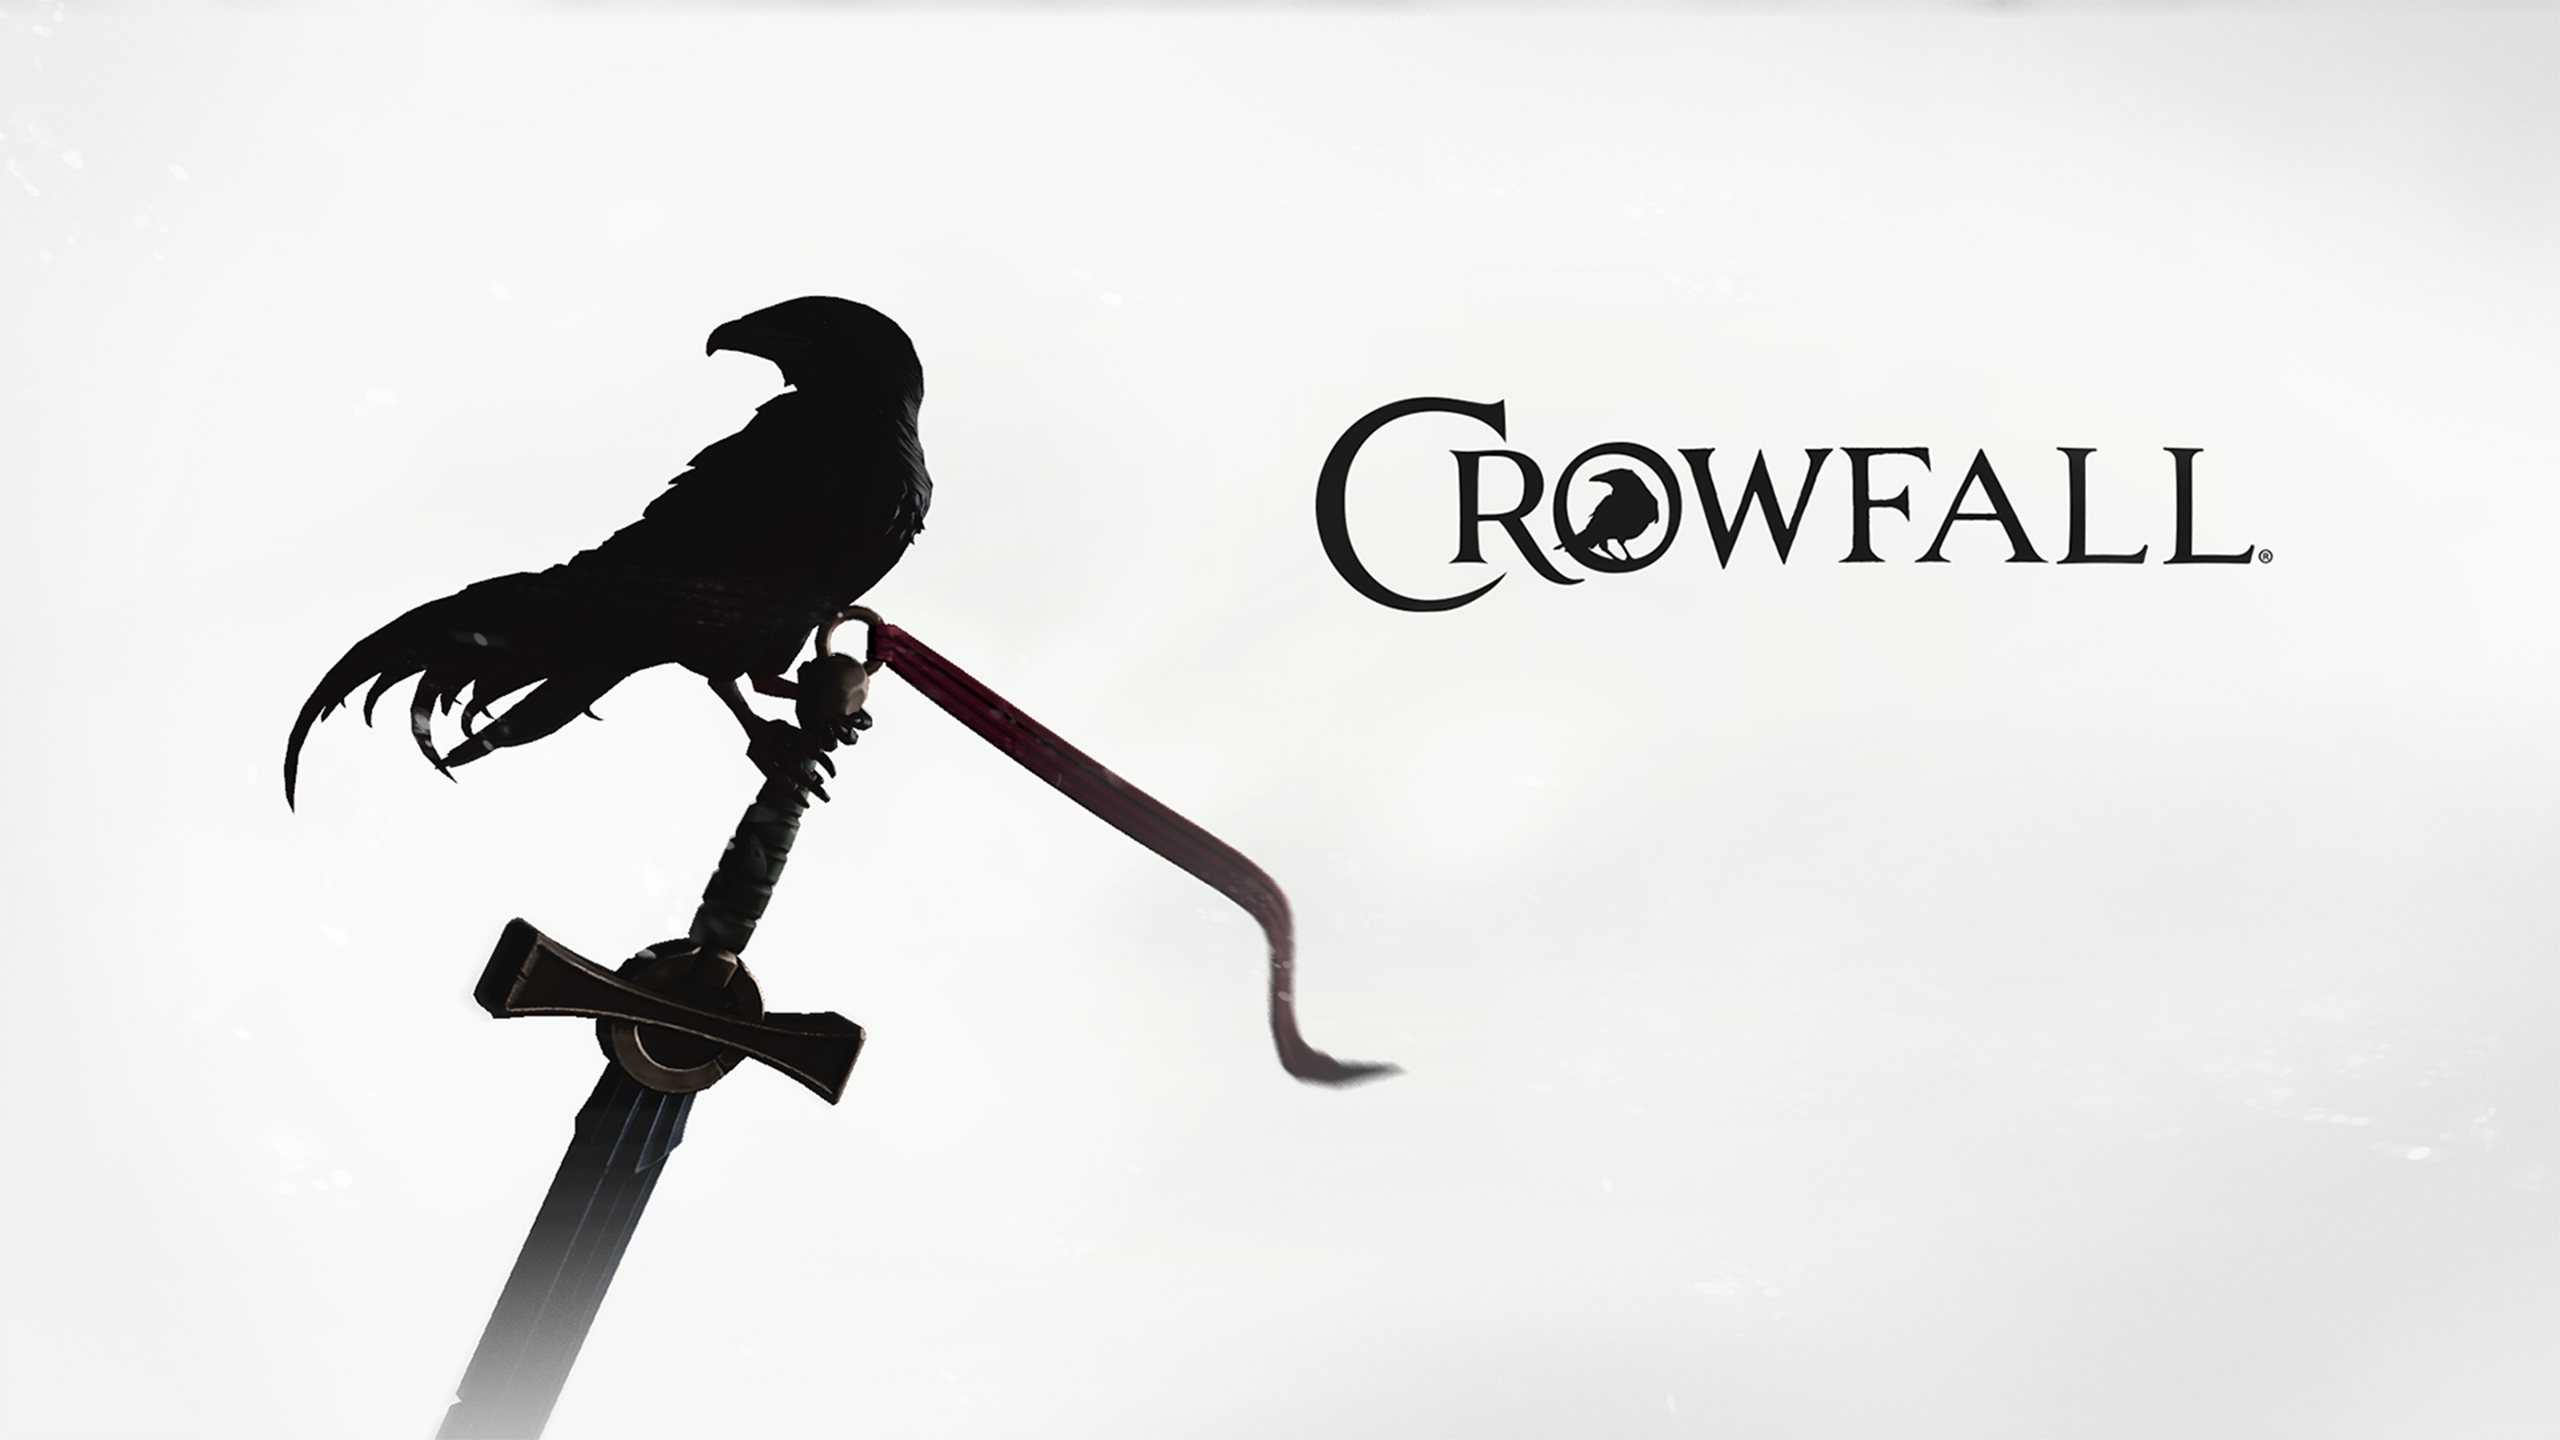 CrowLogin Wallpaper 2560x1440